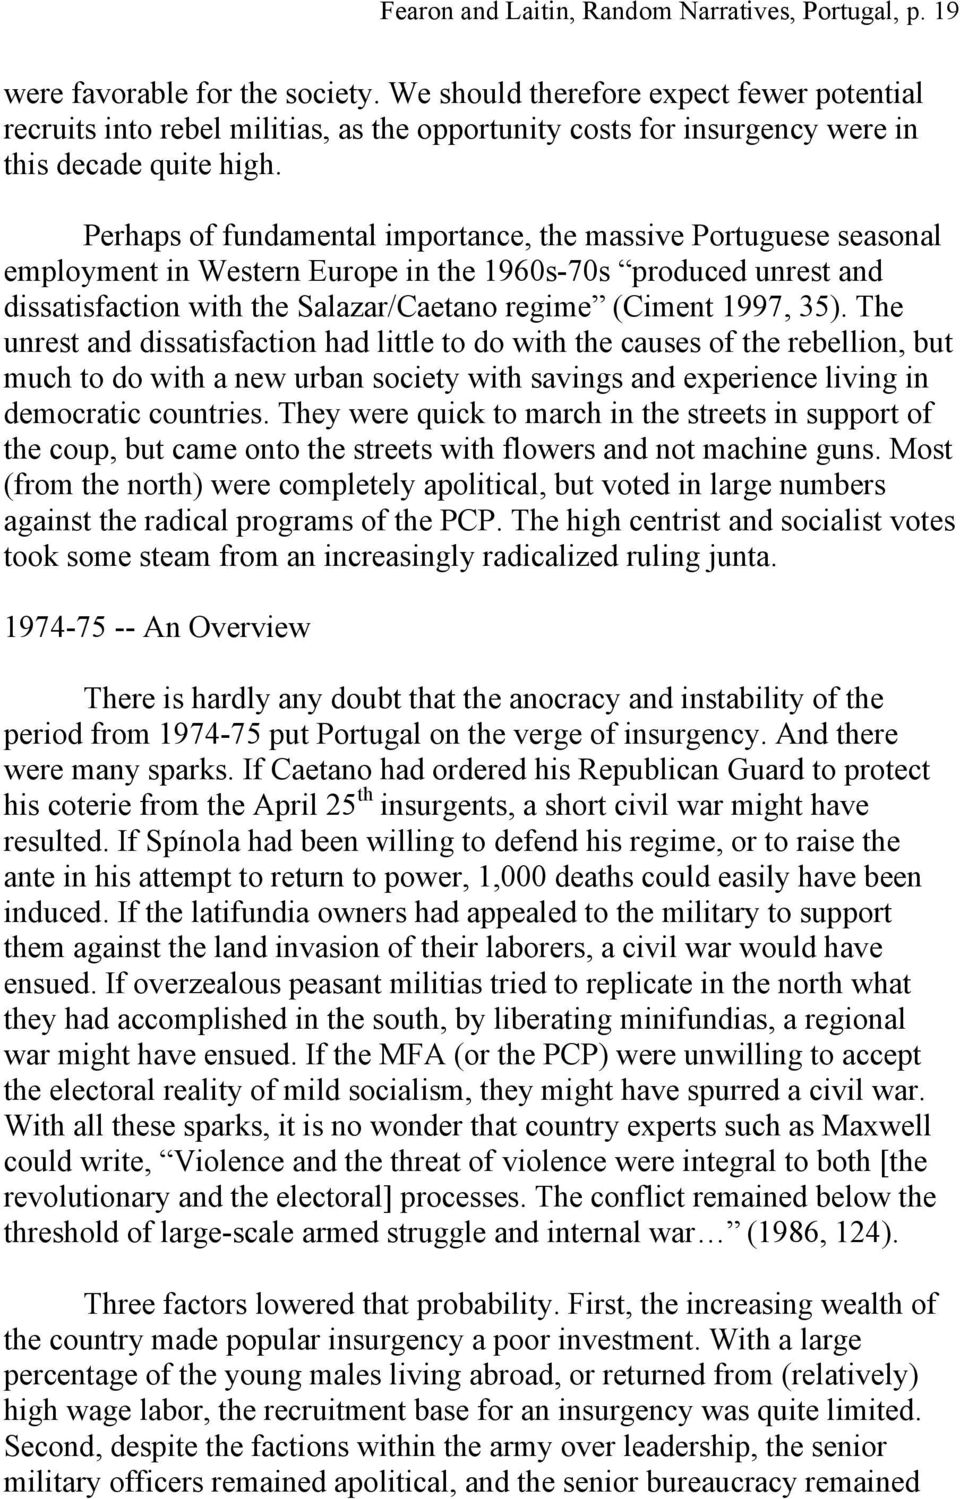 Perhaps of fundamental importance, the massive Portuguese seasonal employment in Western Europe in the 1960s-70s produced unrest and dissatisfaction with the Salazar/Caetano regime (Ciment 1997, 35).